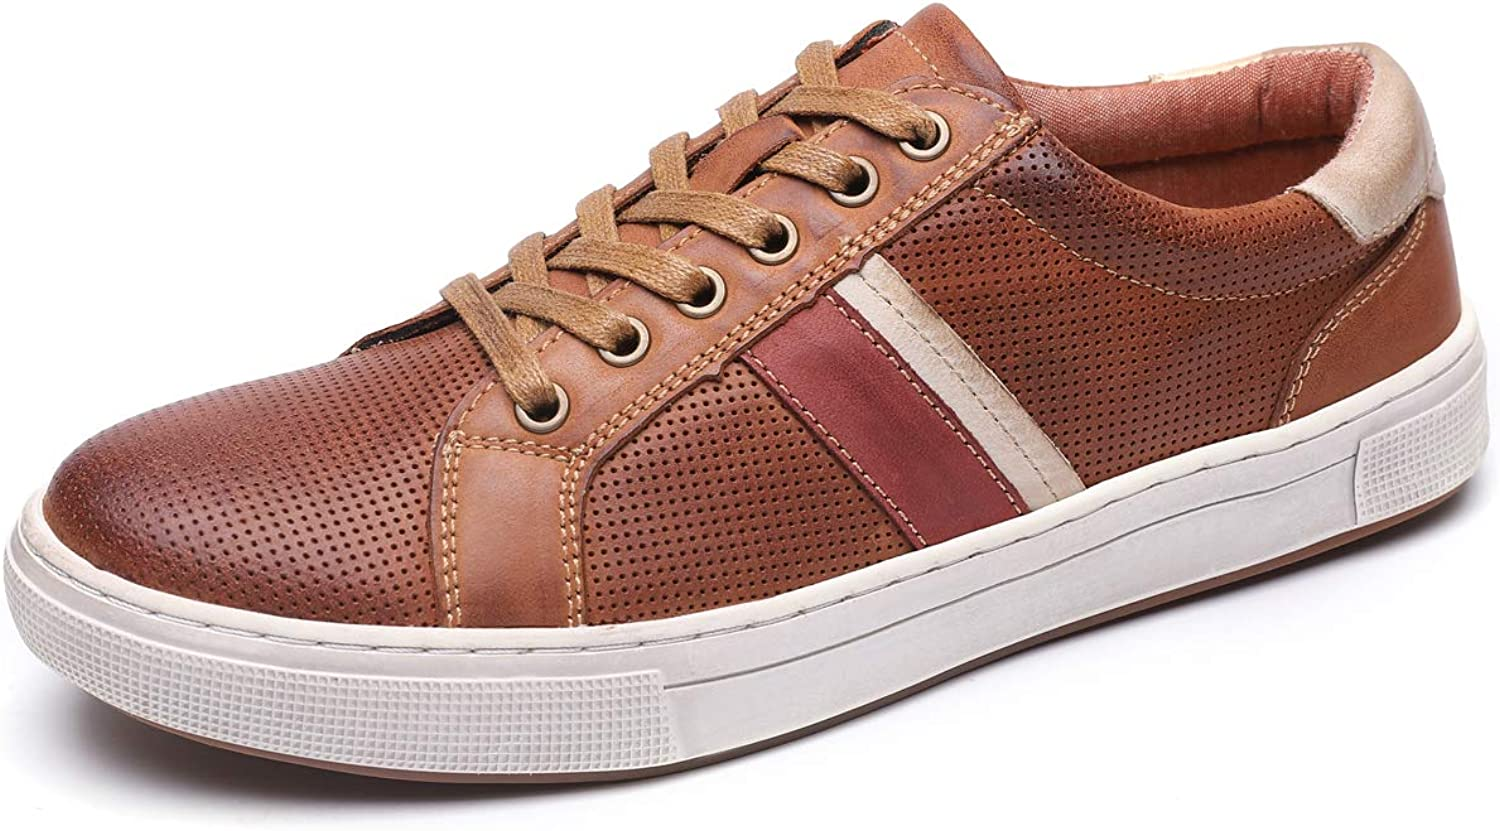 Men's Genuine Leather Fashion Sneakers Casual Clean shoes for Men